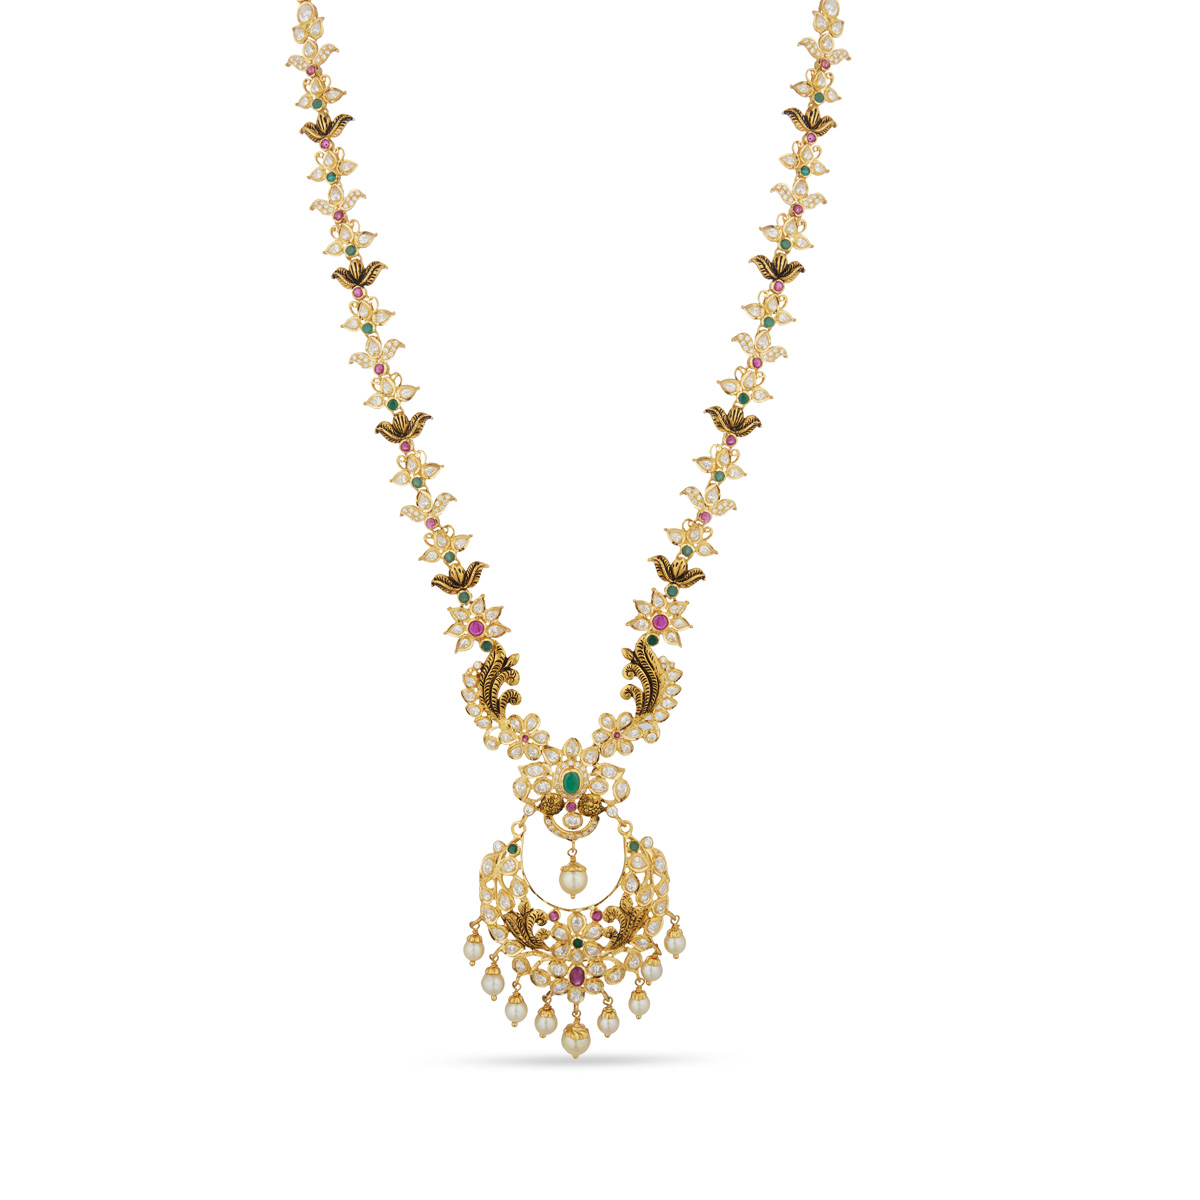 Chandbali Style Necklace